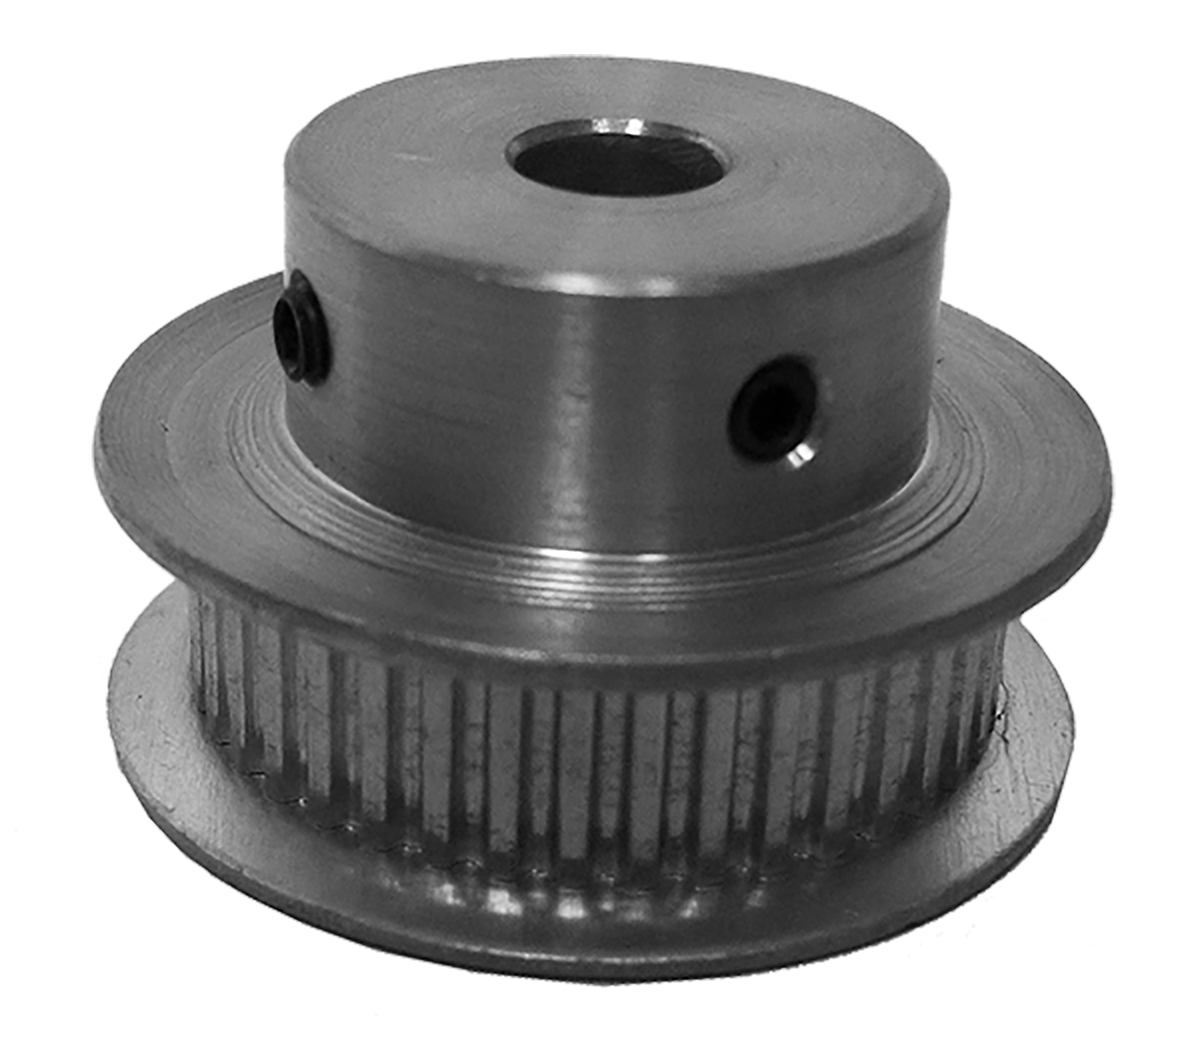 22MP025-6FA2 - Aluminum Imperial Pitch Pulleys